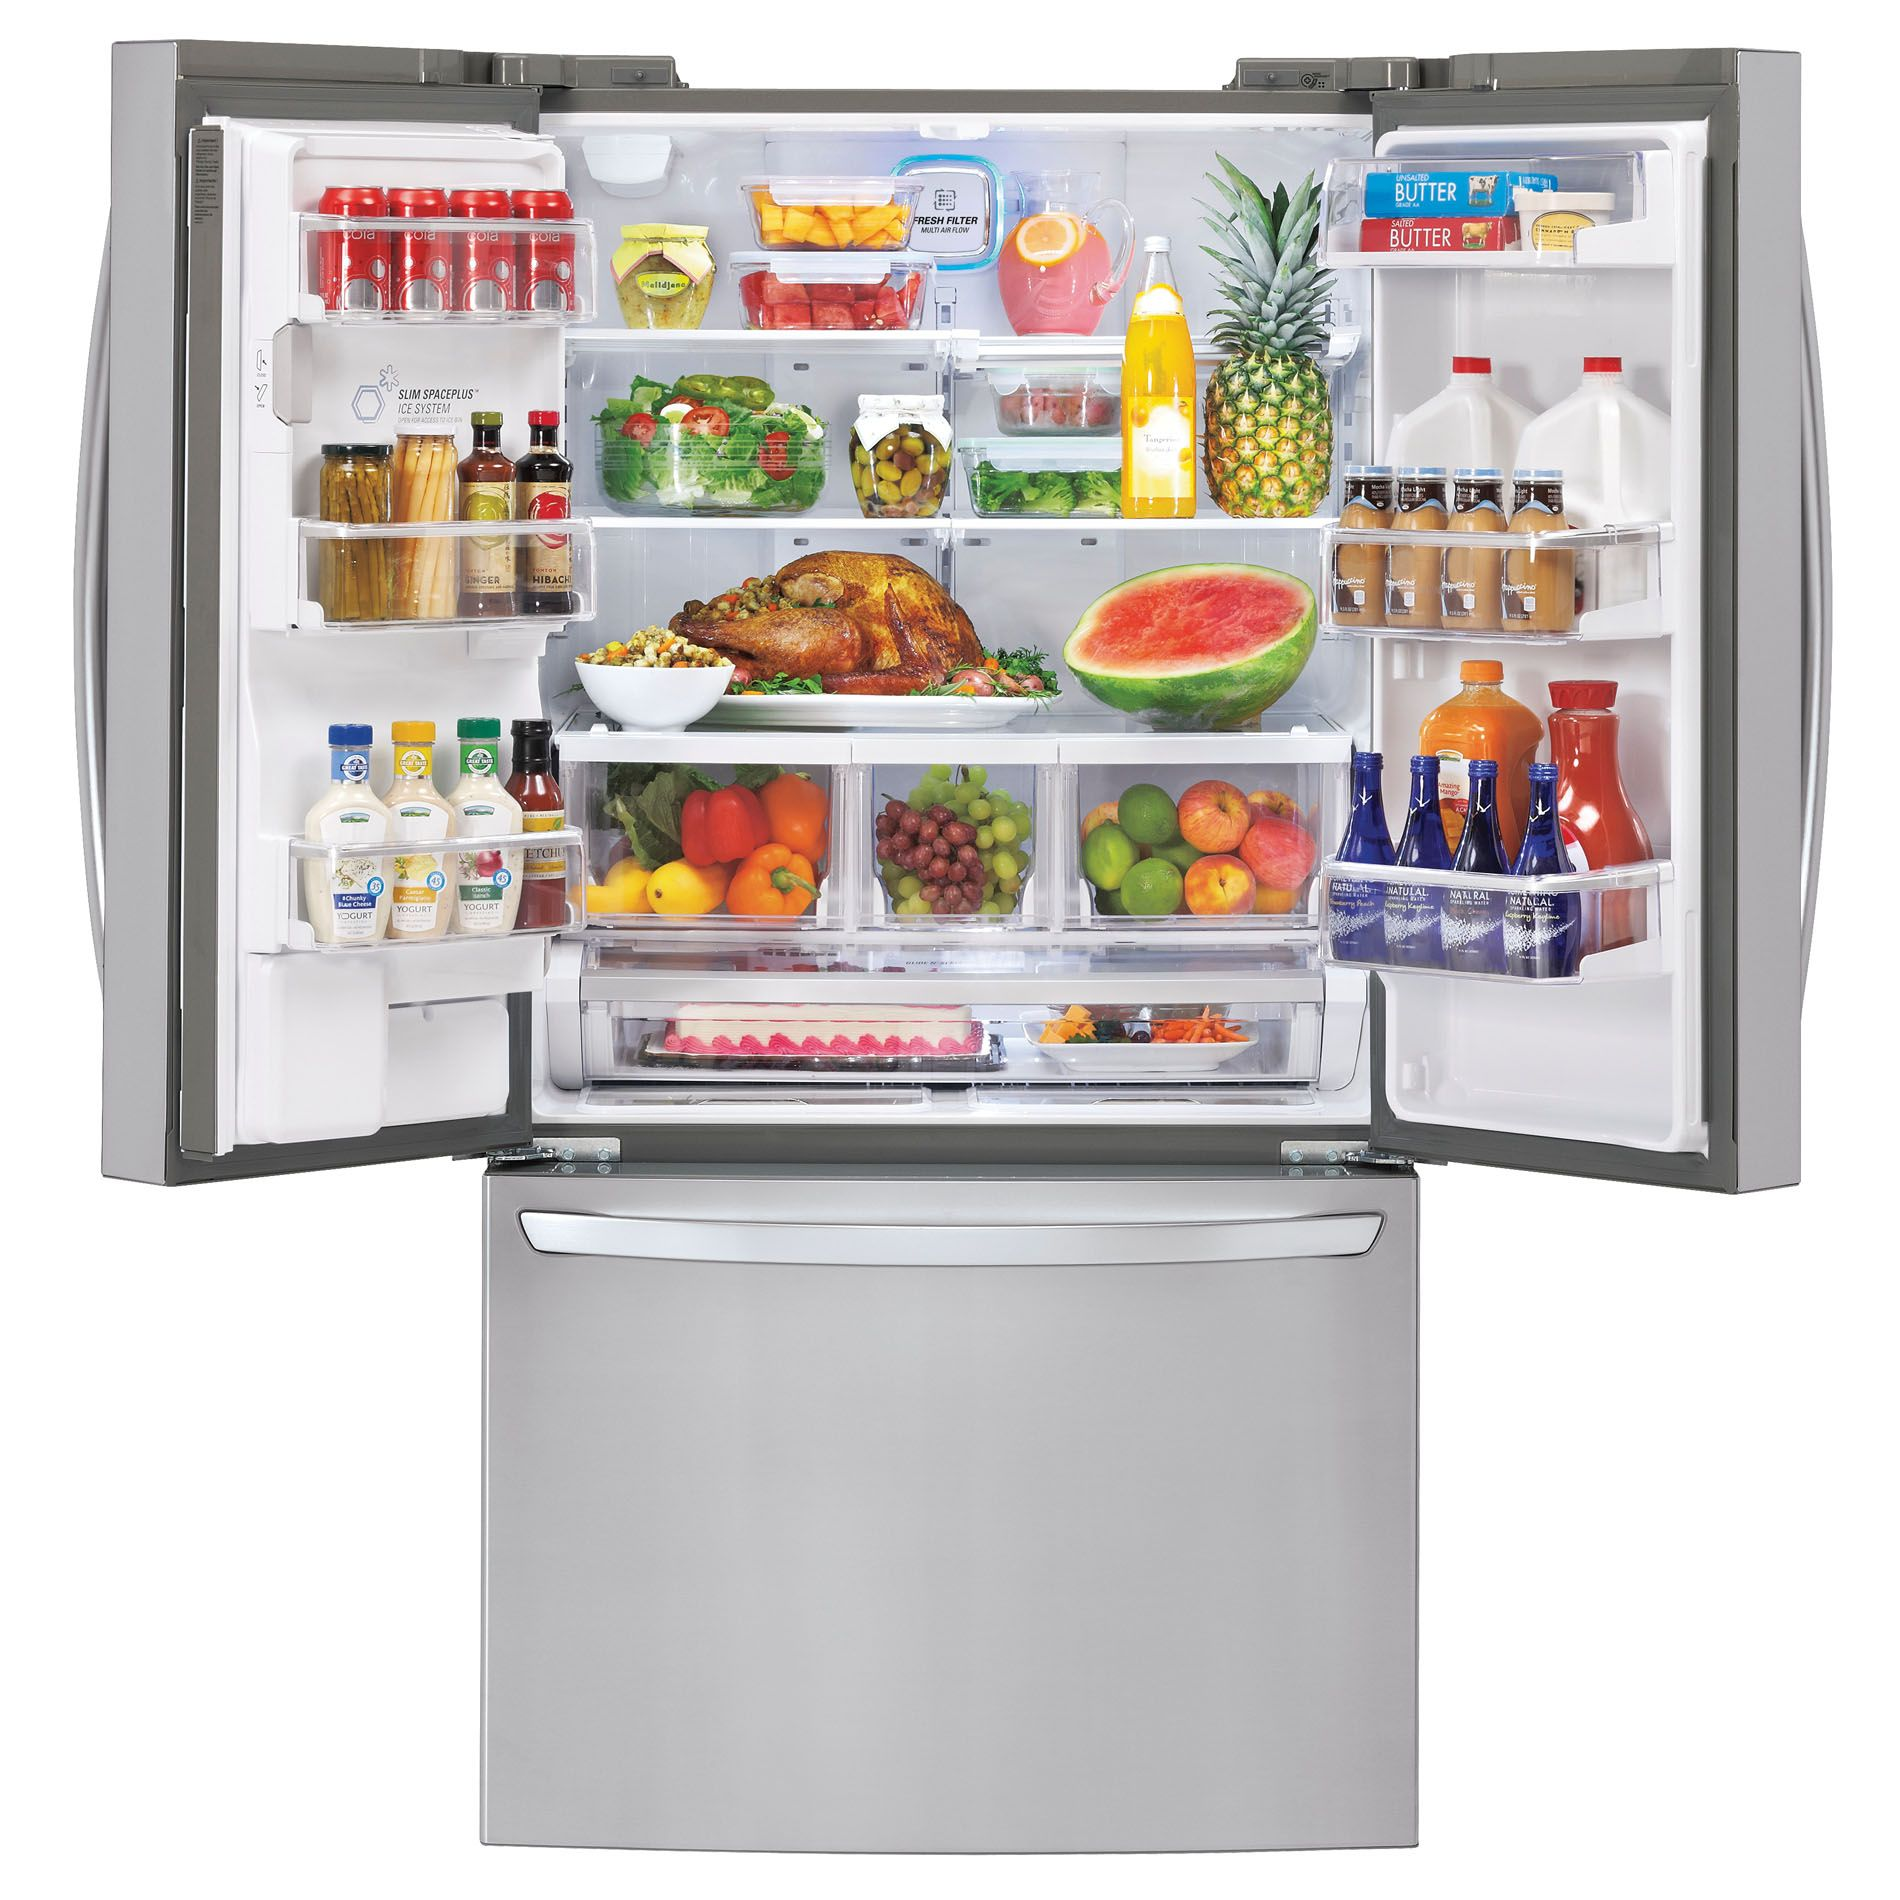 LG 33 cu. ft.  French Door Bottom-Freezer Refrigerator w/ Smart Cooling Plus - Stainless Steel